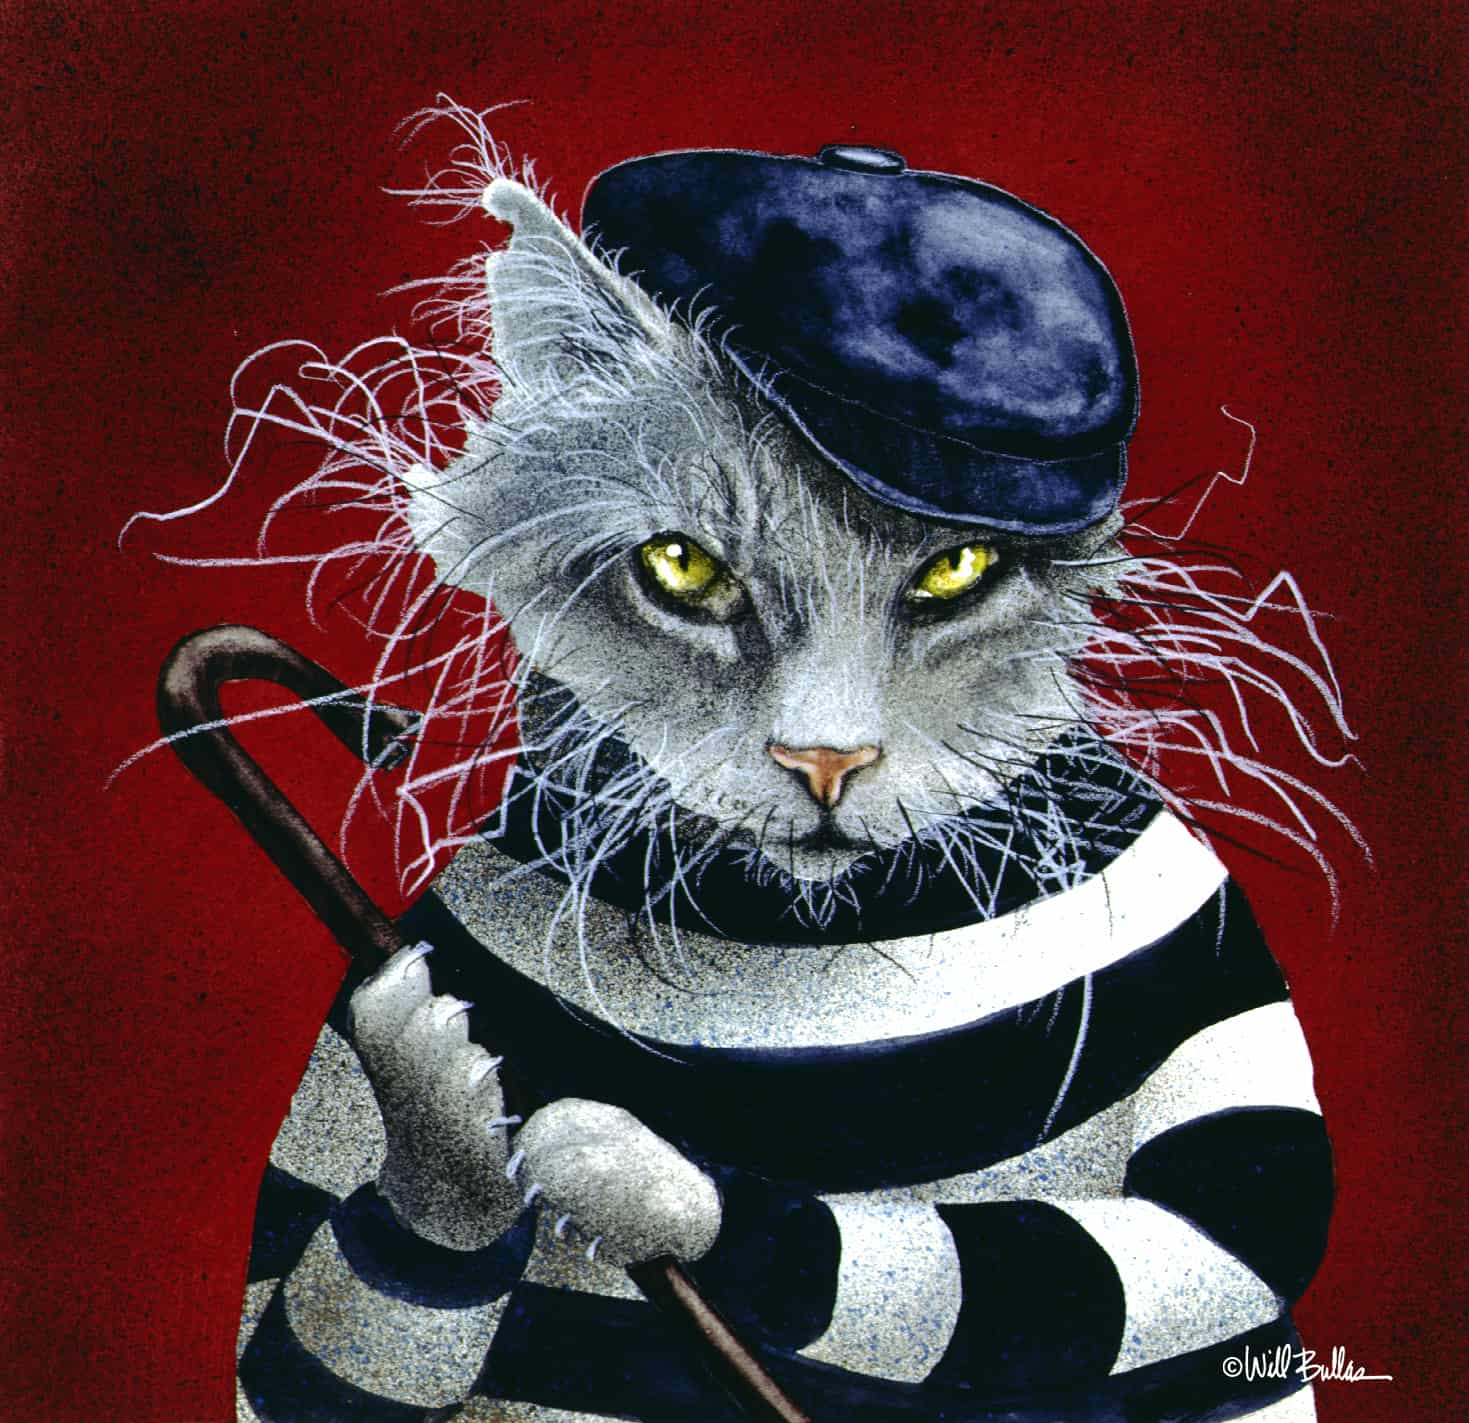 The Cat Burgler Used With Permission